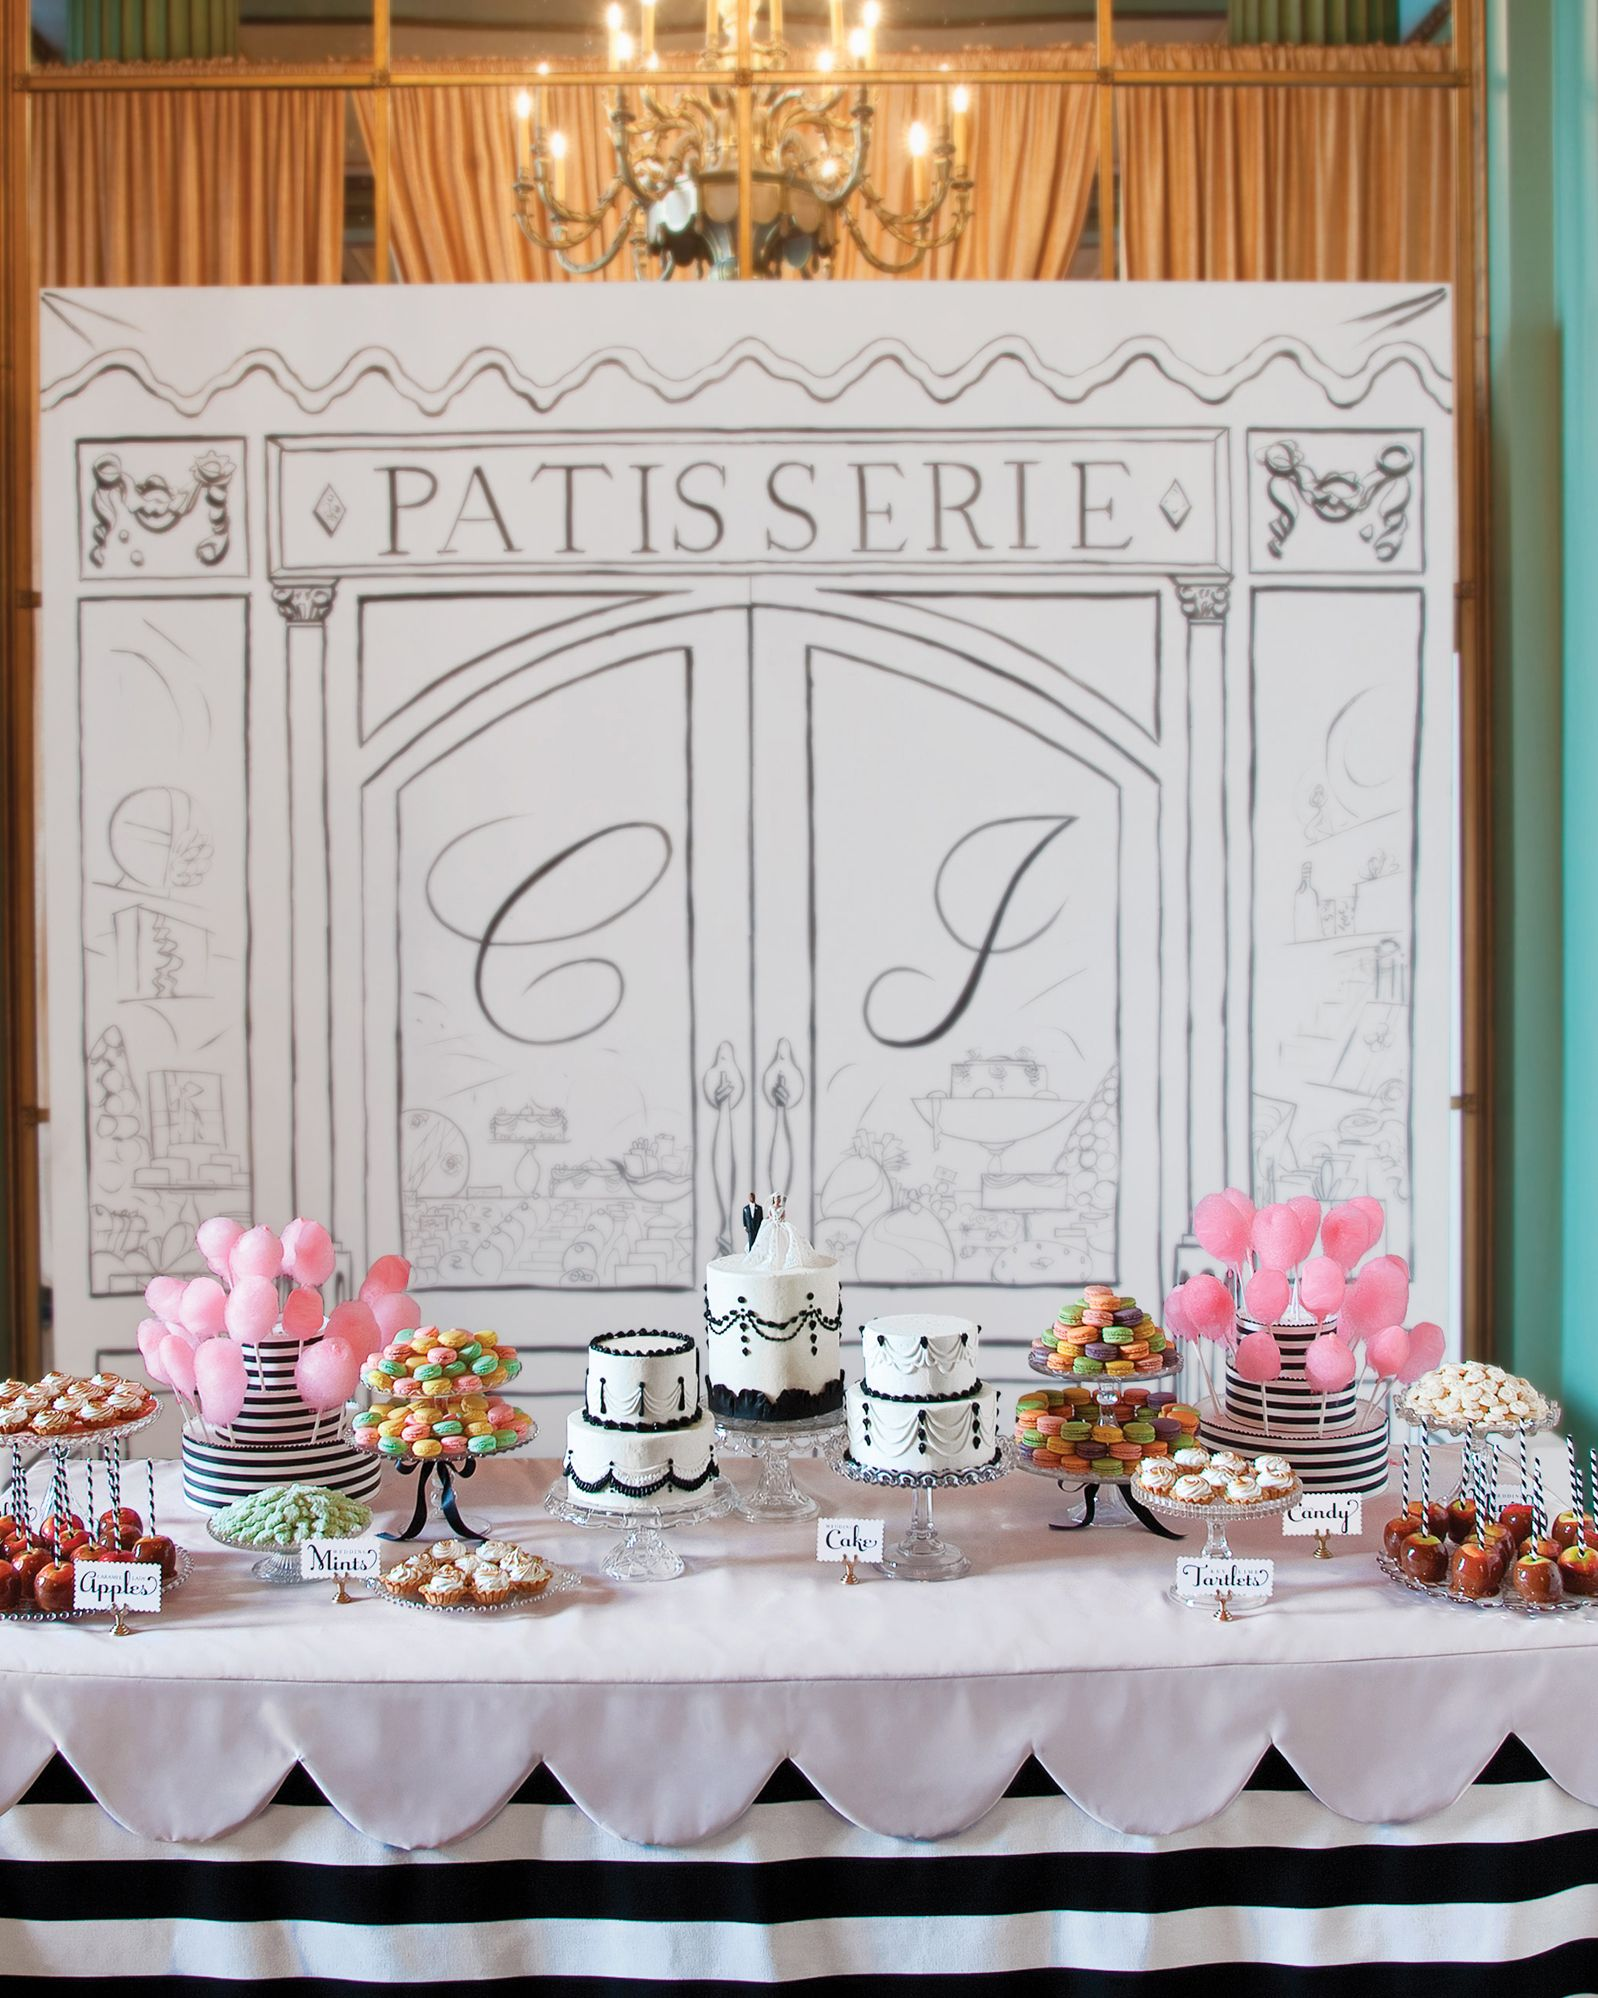 Dessert Table Ideas from Real Weddings   Paris party ...